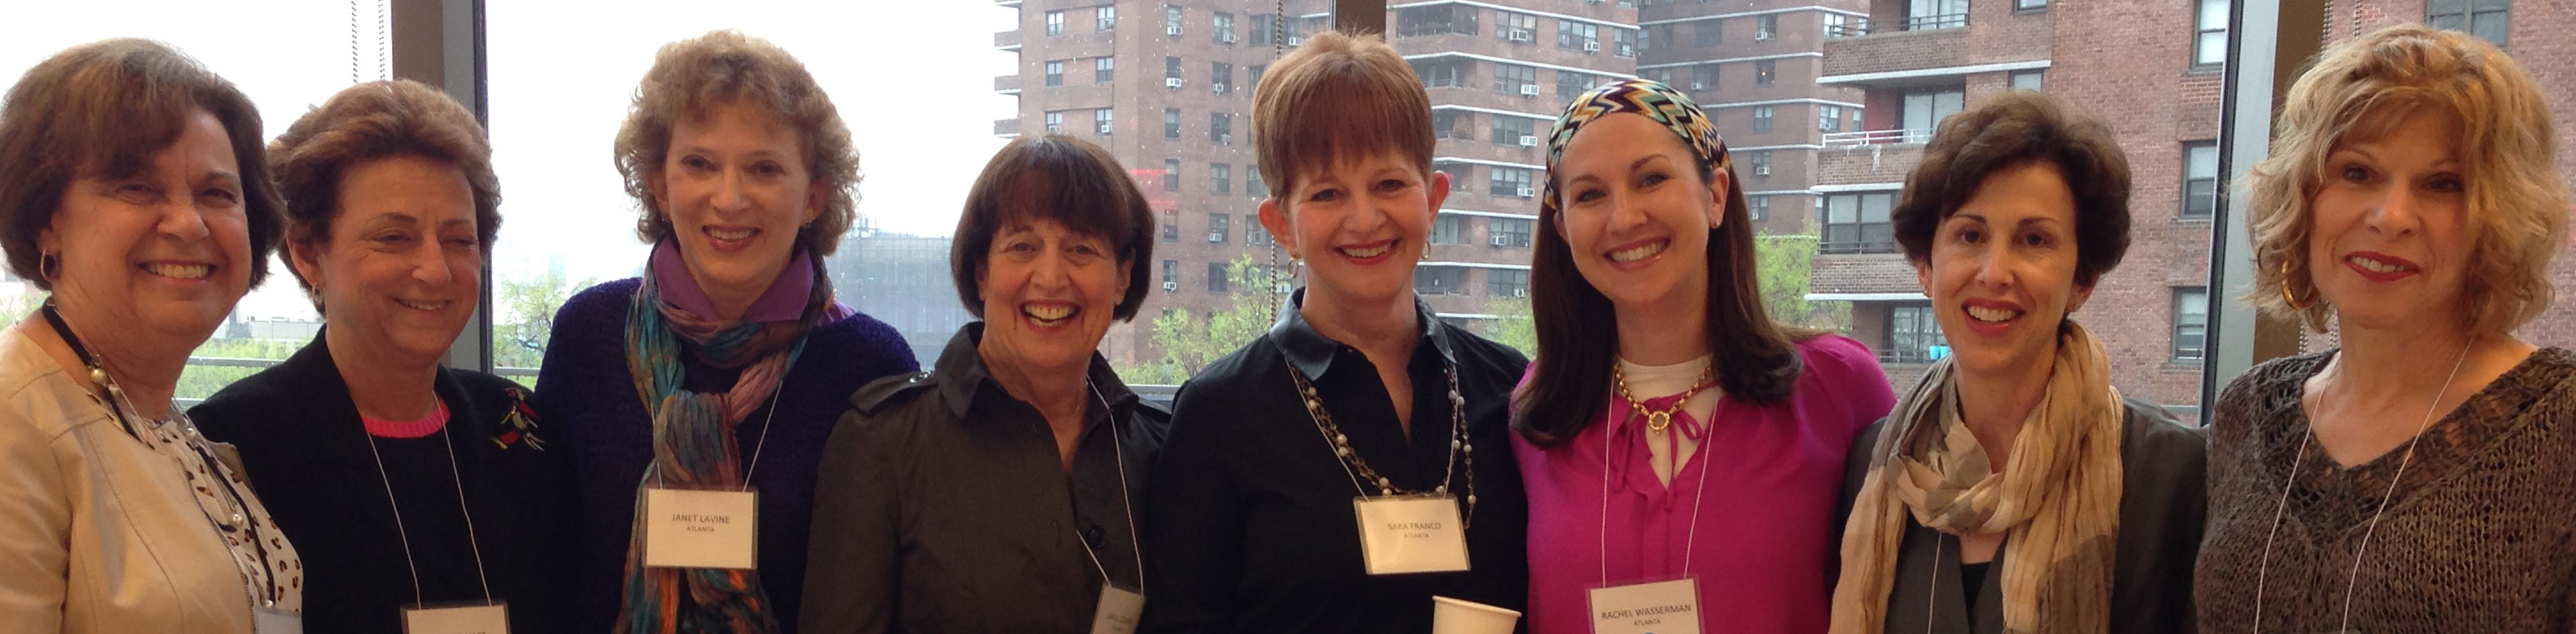 JWFA Trustees enjoy time together after a discussion on Jewish grants.